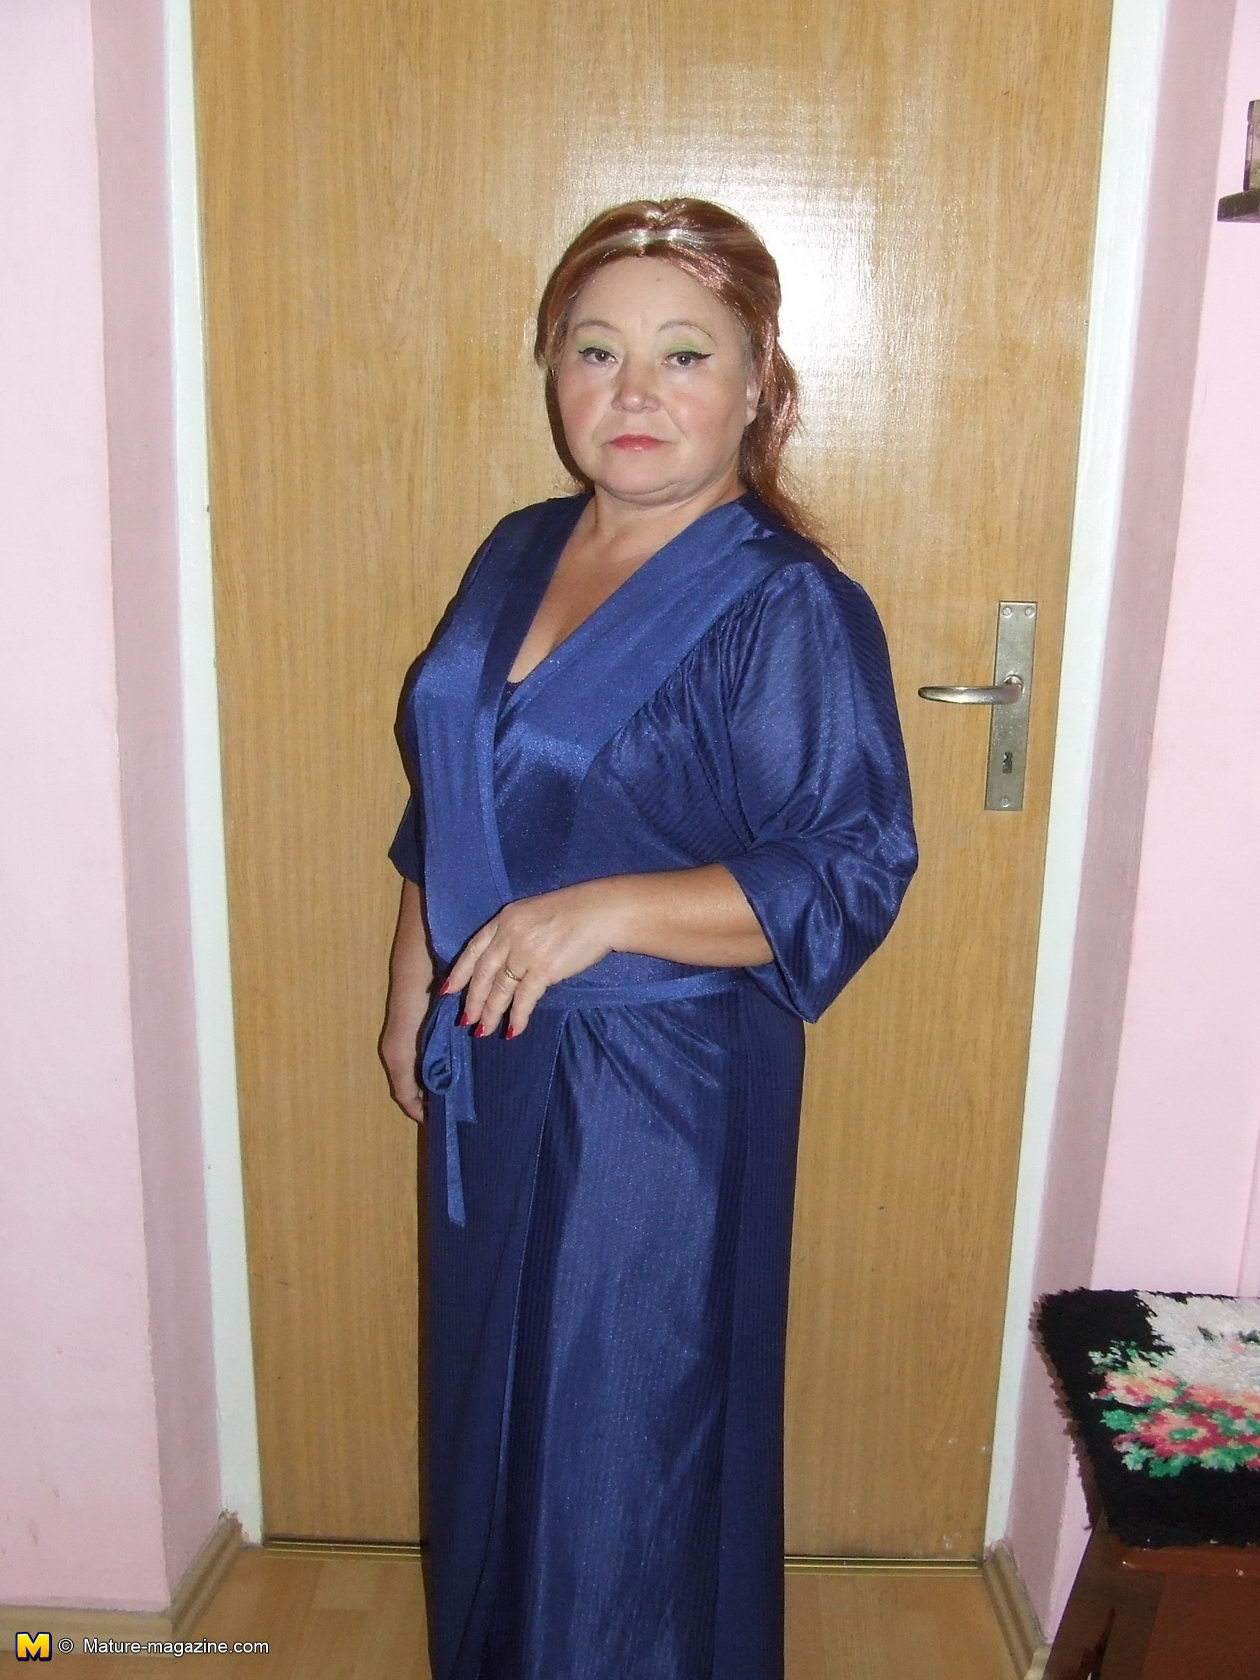 Naughty housewife getting naked and playfull - Granny.nu